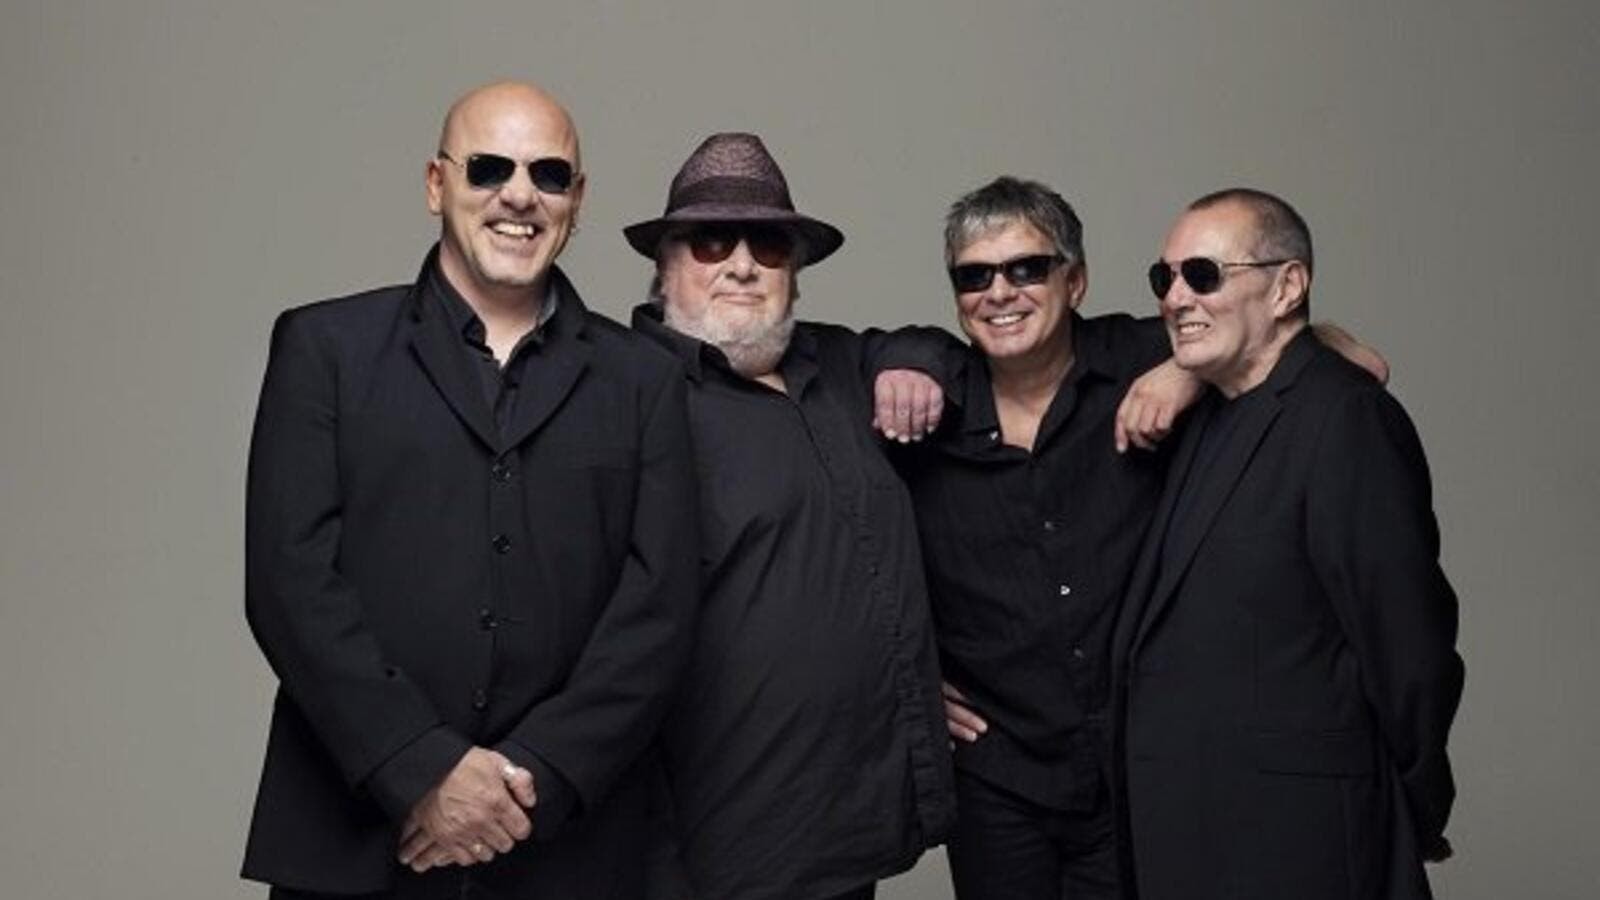 The Stranglers are members Jet Black, Jean-Jacques Burnel, Dave Greenfield and Baz Warne.  (Twitter)